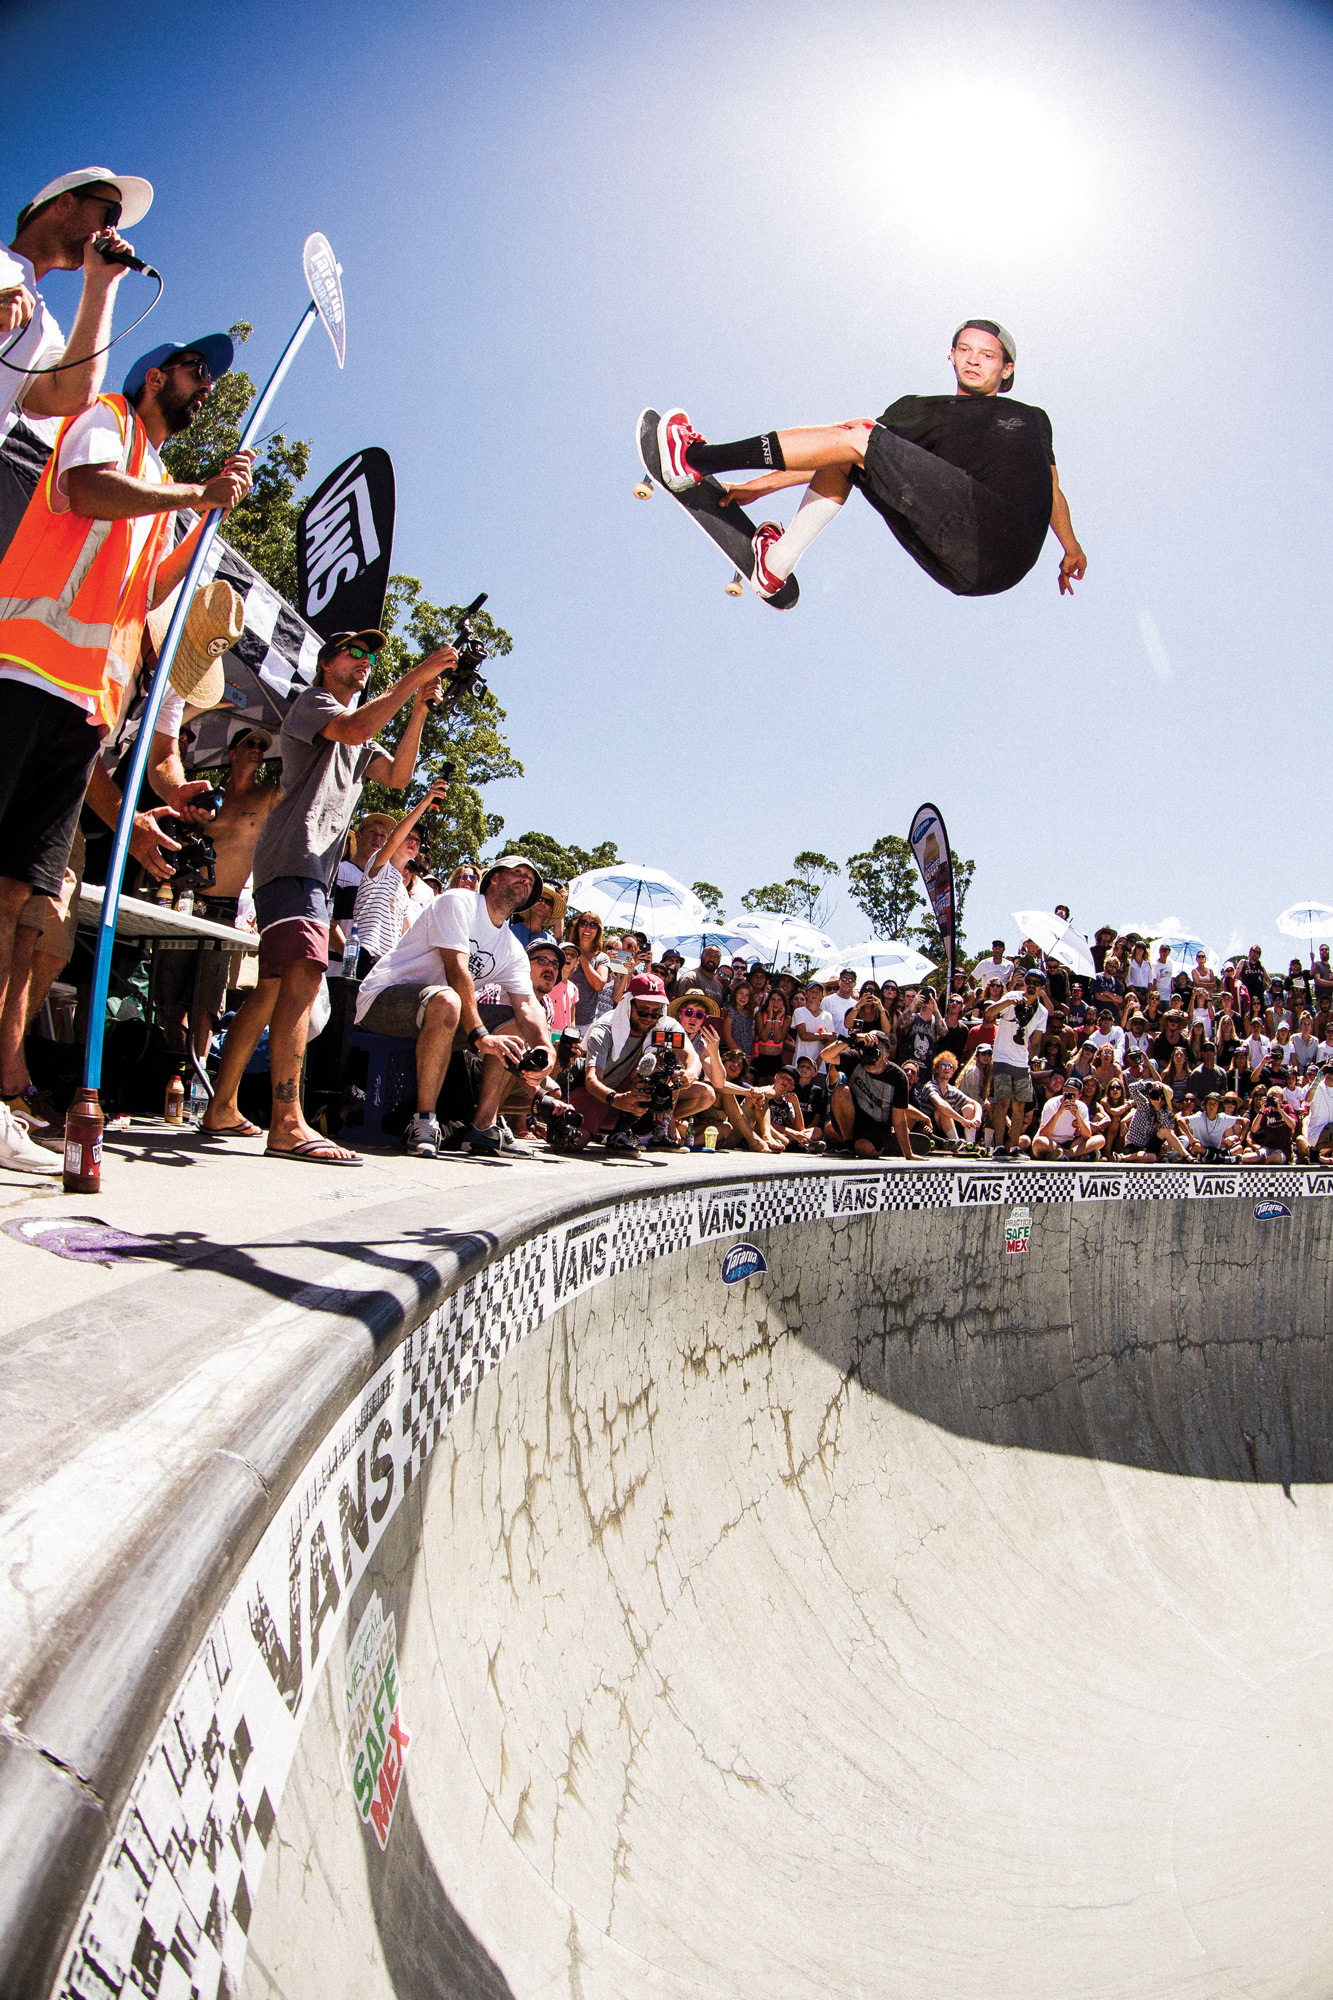 Photograph of Bowman Hansen, frontside air at the 2017 Mangawhai Bowl Jam